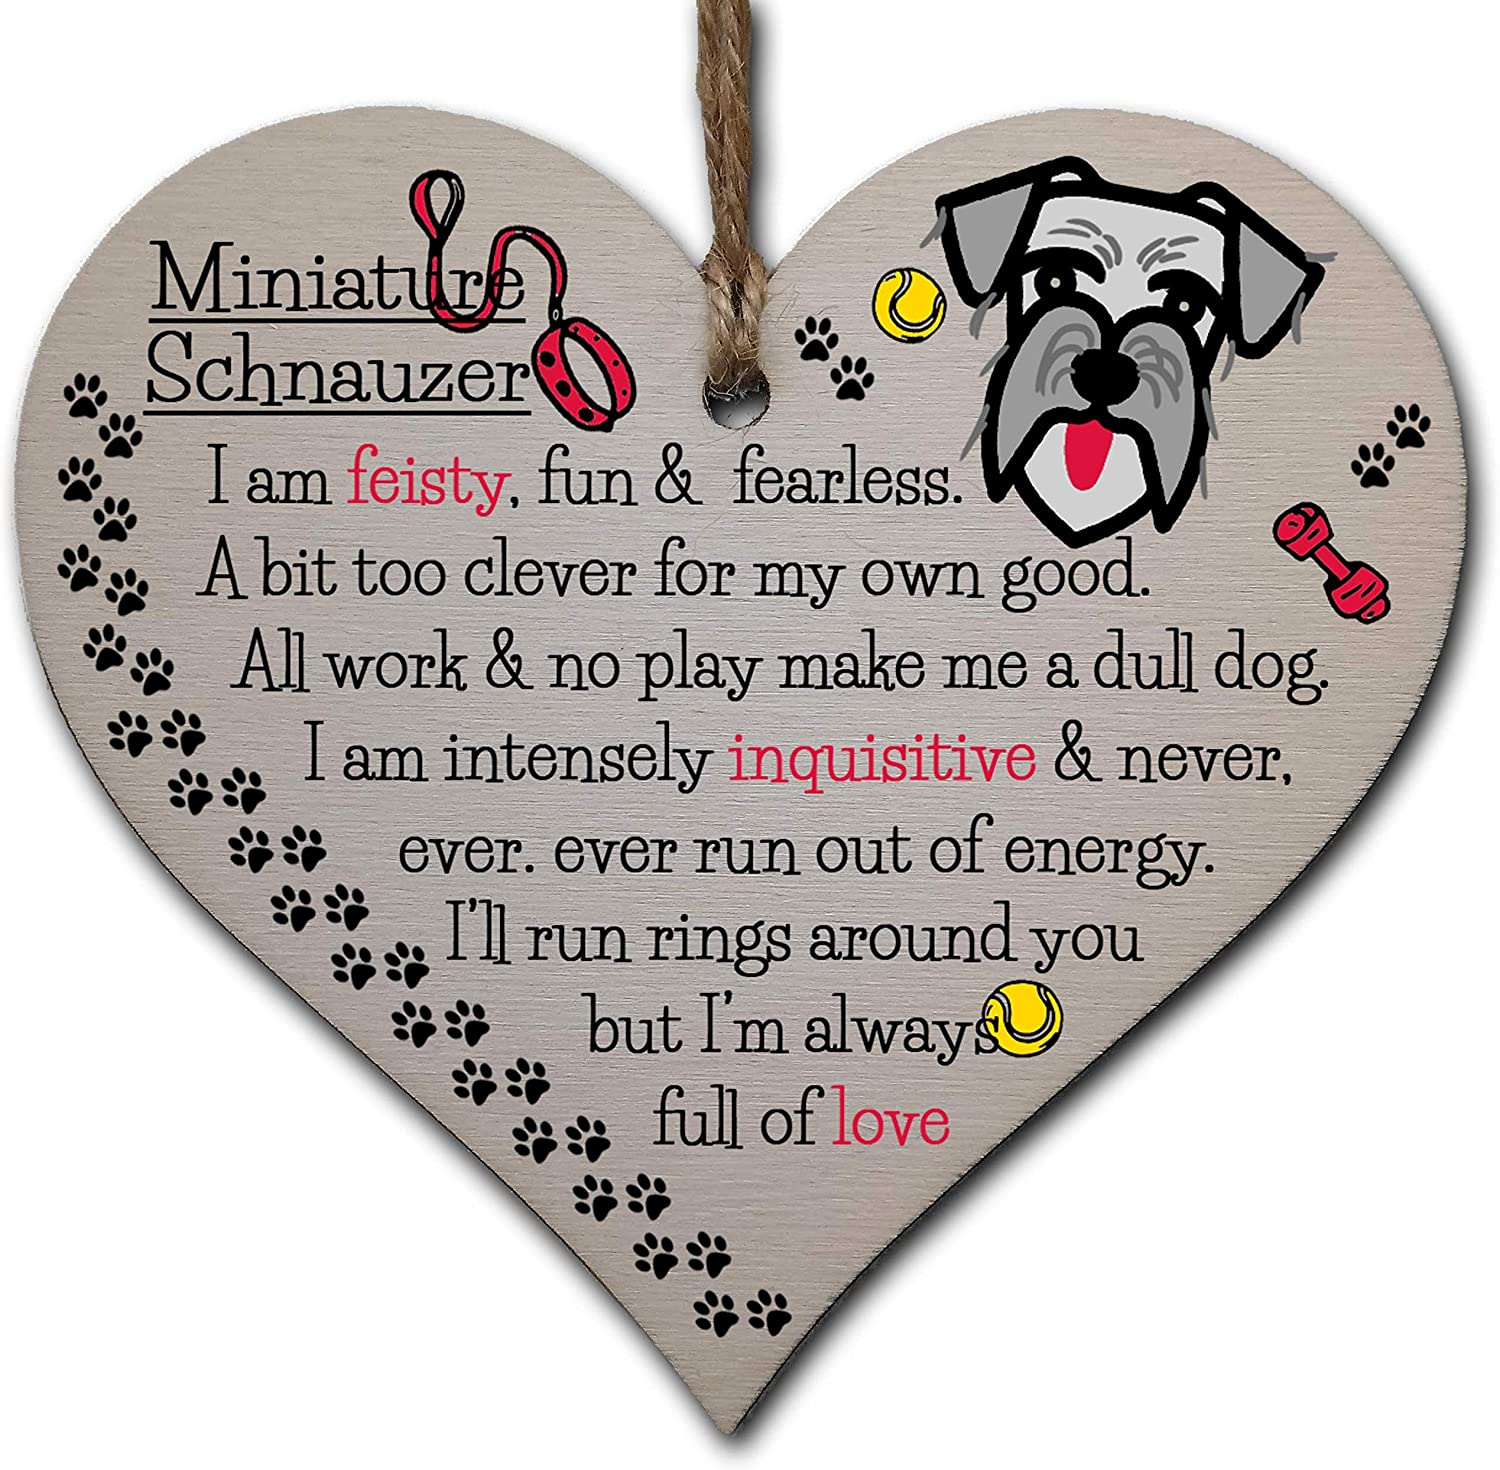 Handmade Wooden Hanging Heart Plaque Gift Perfect for Dog Lovers Pet Keepsake No